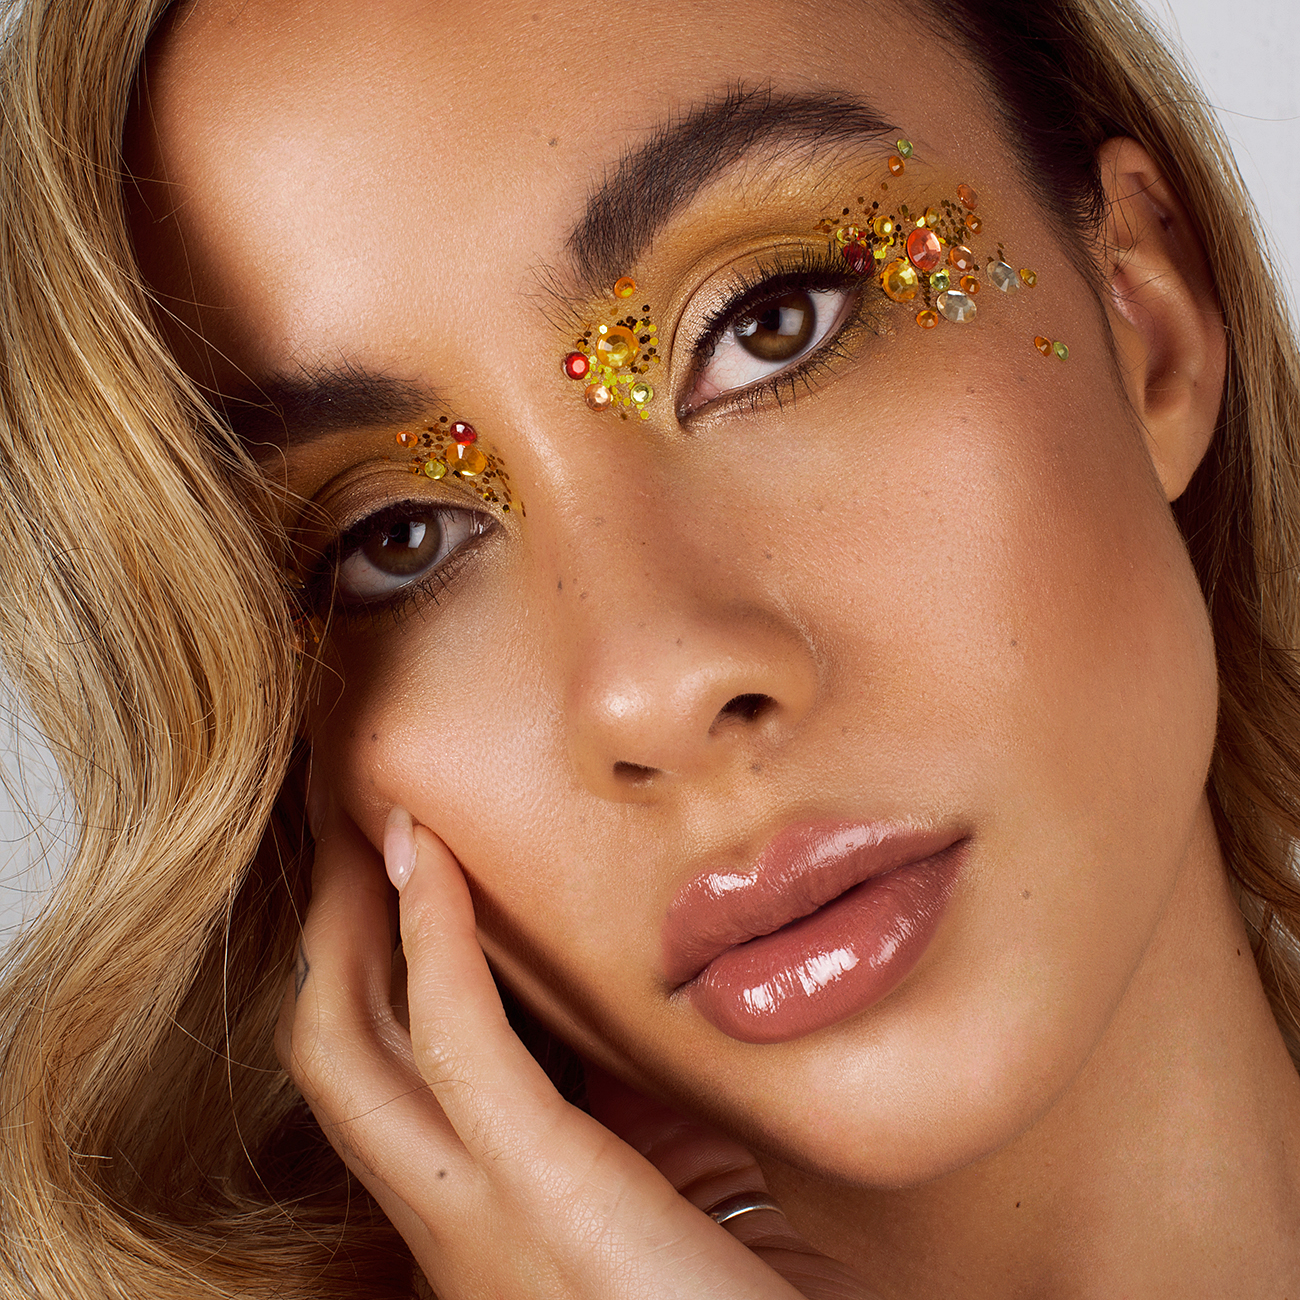 Natural Makeup with Highlighted, Glowing, Dewy Skin, Glossy Lips and Jewels by Jaynelle Lording